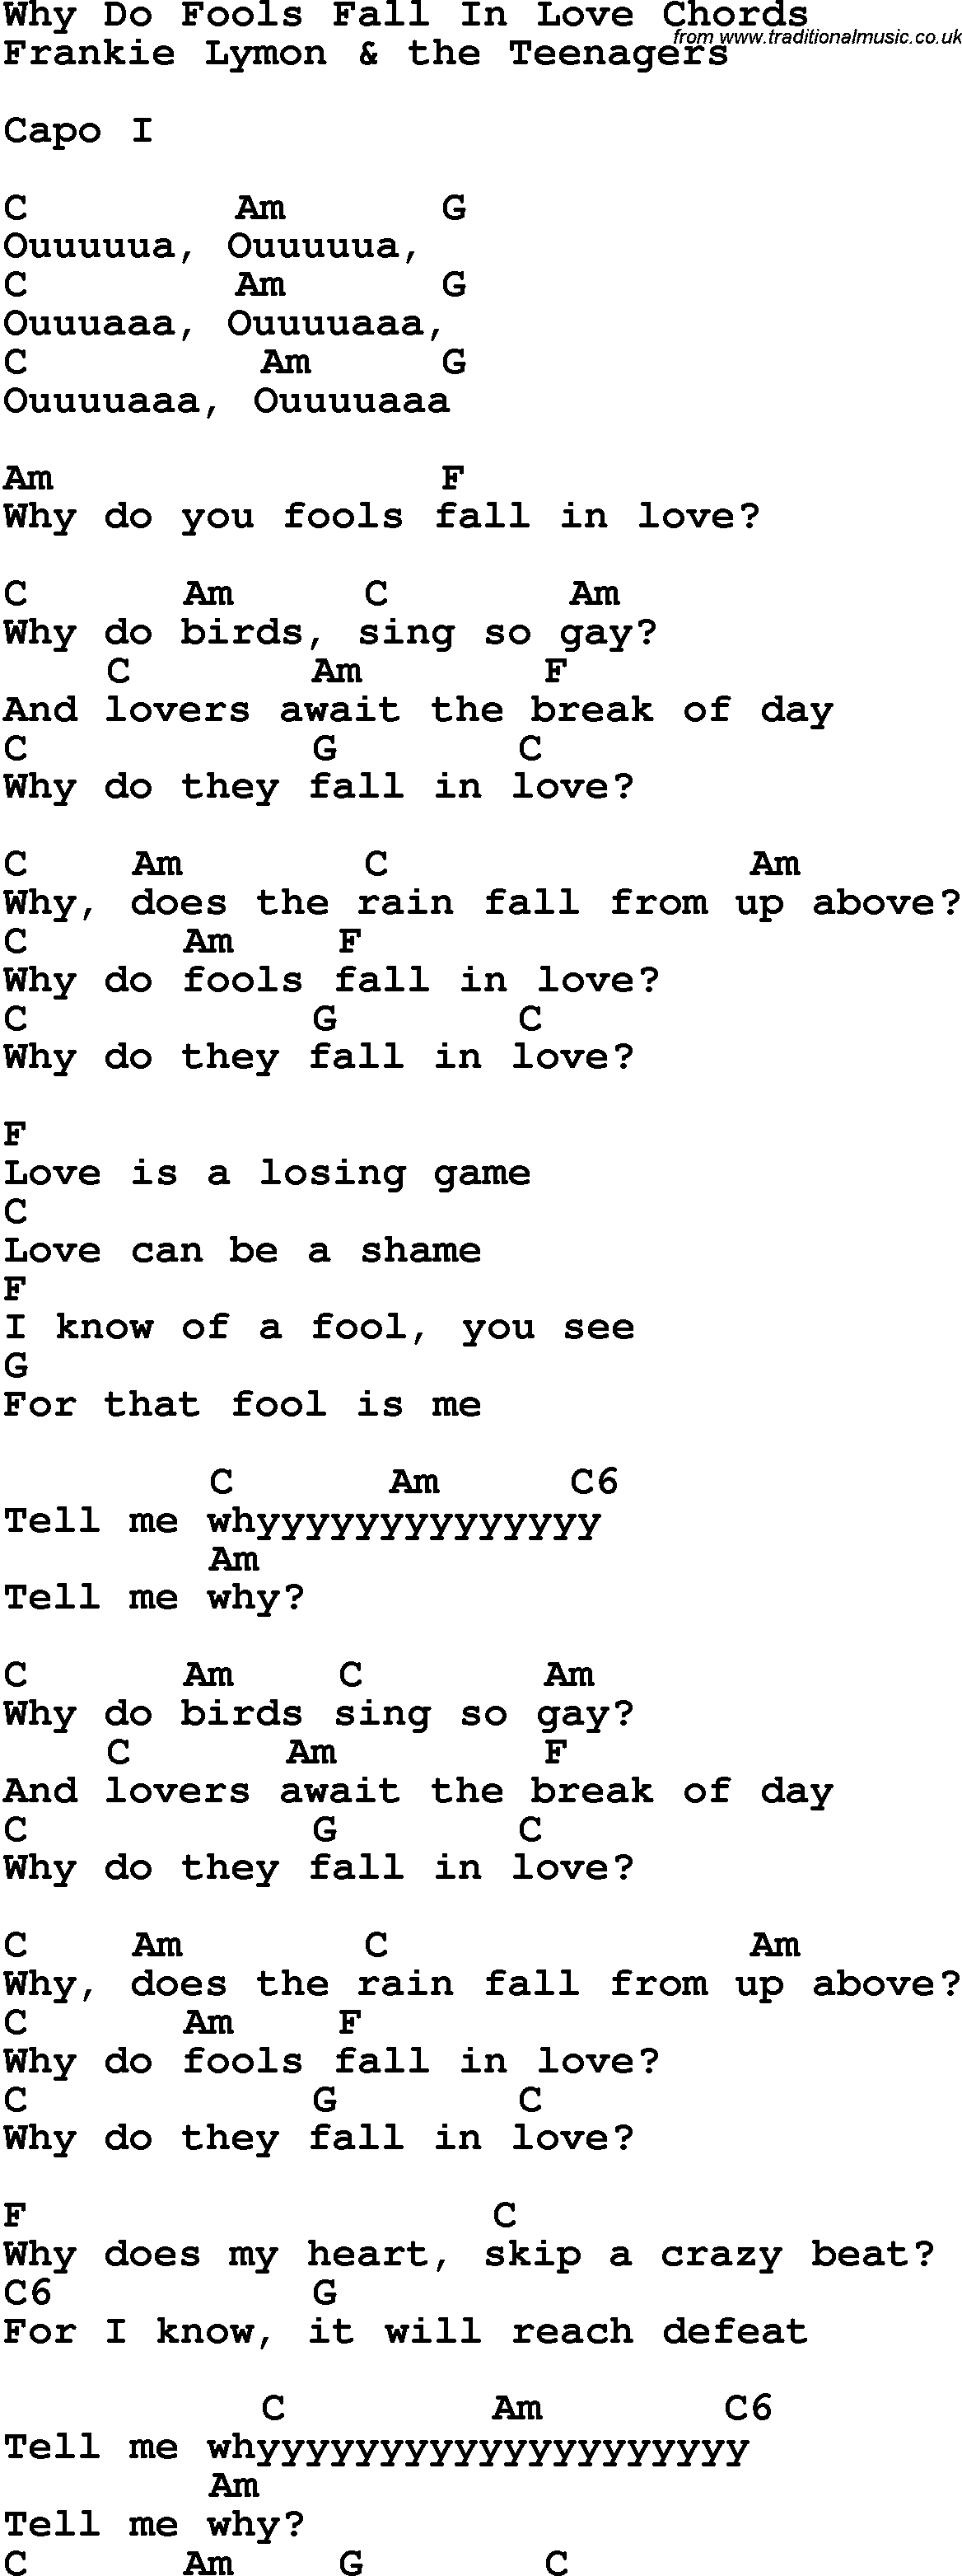 Song Lyrics With Guitar Chords For Why Do Fools Fall In Love I